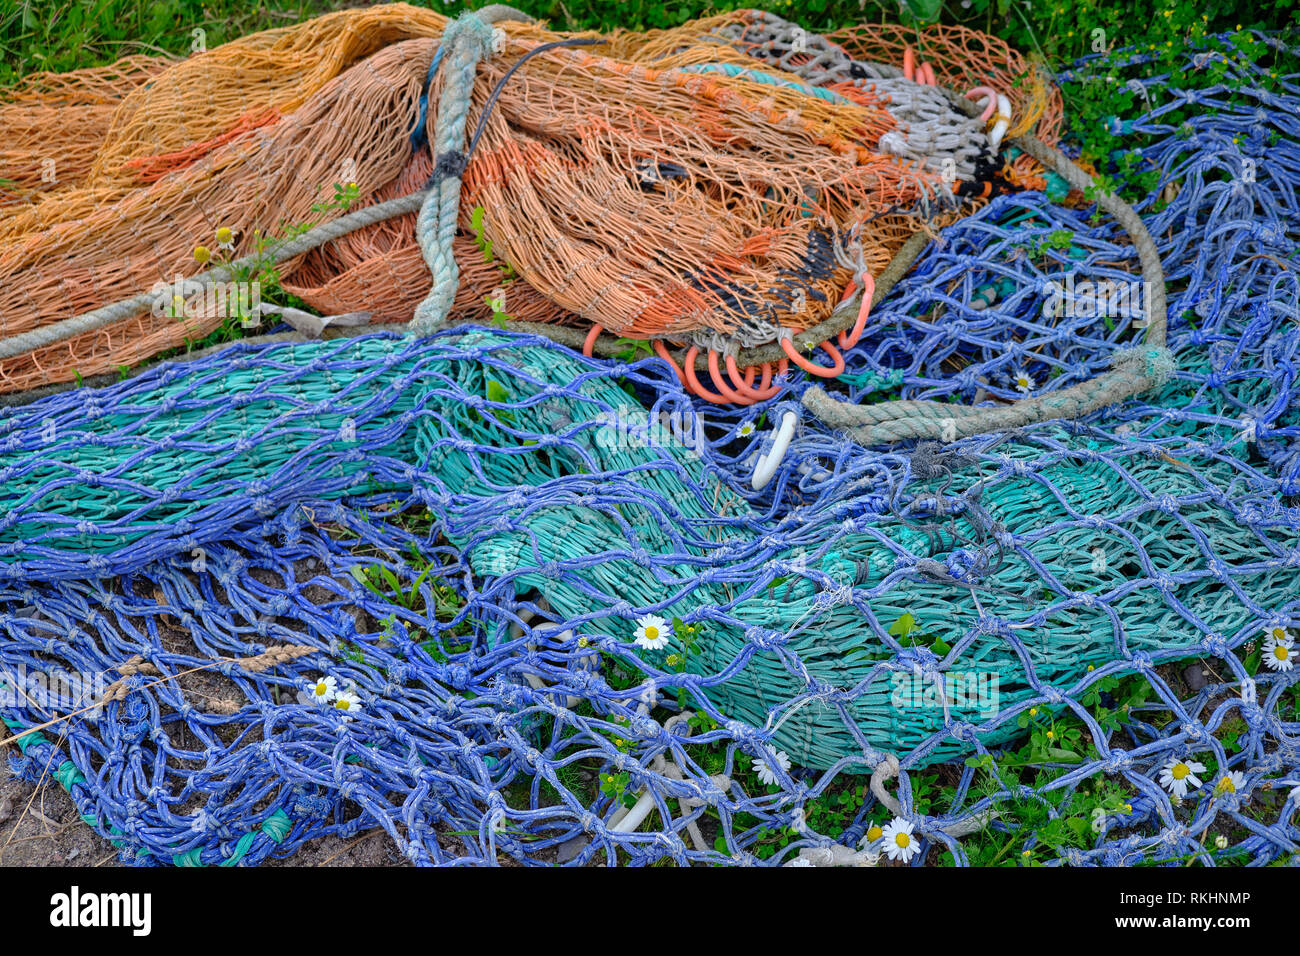 Orange and blue colorful fishing nets lying on grass and flowers peeking through. Both are aged and faded, tossed aside. daylight picture on grey day. - Stock Image